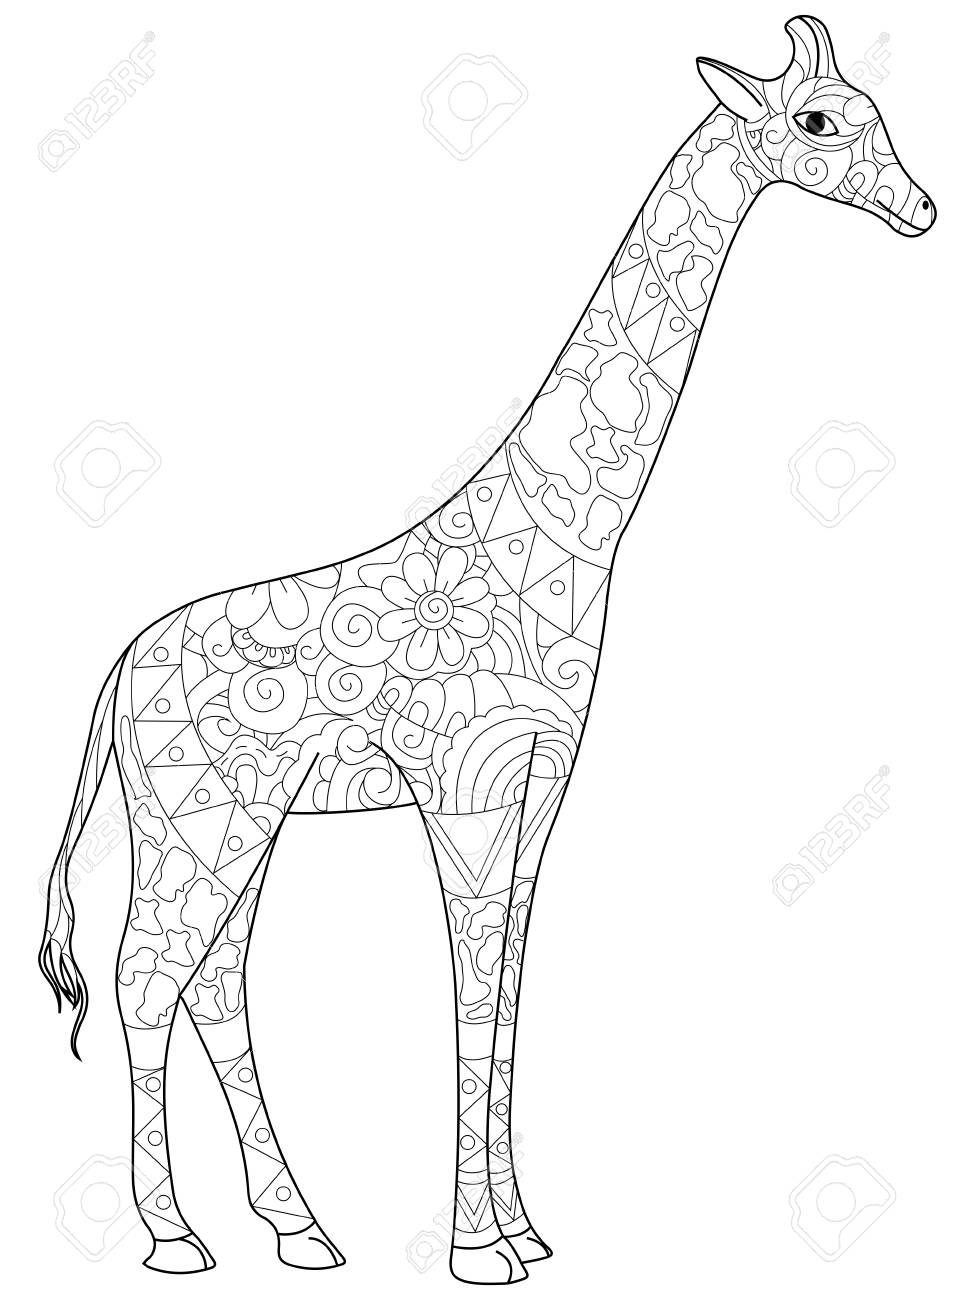 Giraffe Coloring Book For Adults Vector Illustration Royalty Free ...